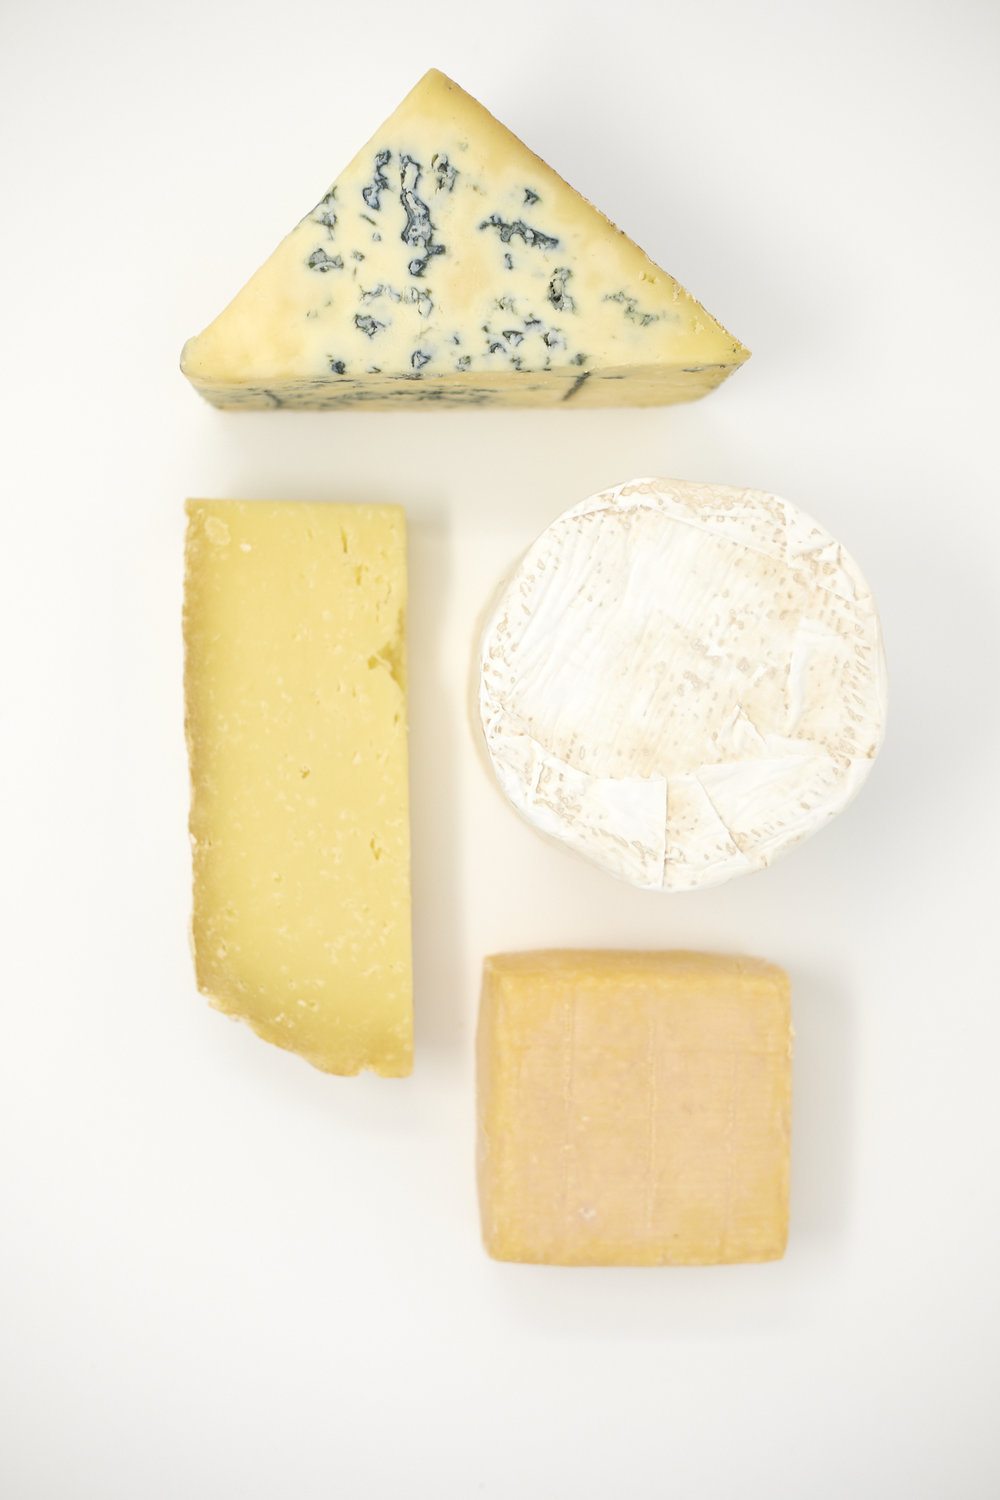 Saturdays @ 5:30pm - Cheese Talk & TastingHead out to the farm and learn about the cheese making process from udder to table. Enjoy watching our cows being milked and hear about what it takes to turn that milk into cheese. You will then taste your way through a selection of all of our cheeses. B.Y.O.B. if you like.25$ per person1.5 hours.No advance registration needed. Meet at farmstand.